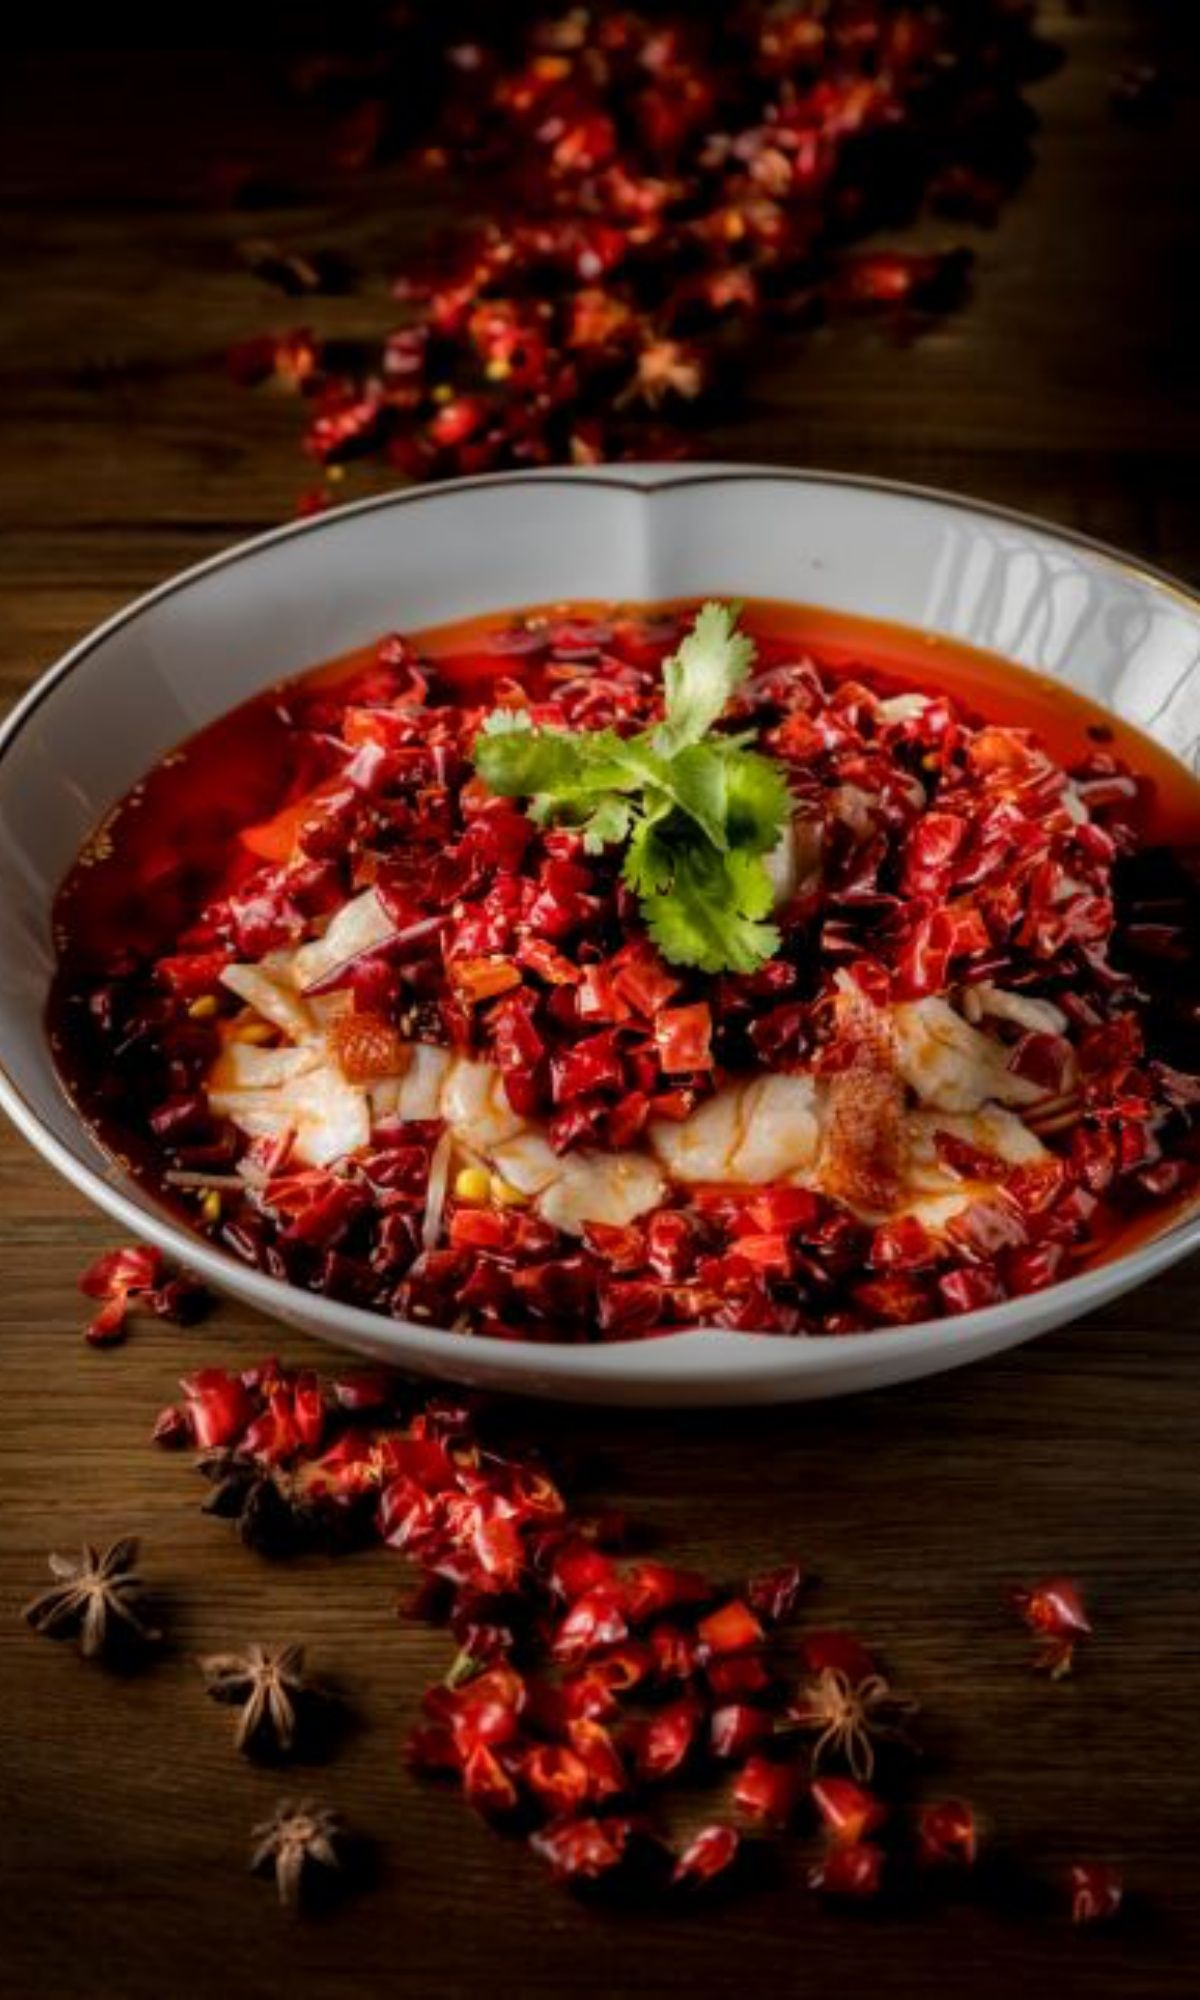 The Best Places To Enjoy Sichuan Food In Hong Kong